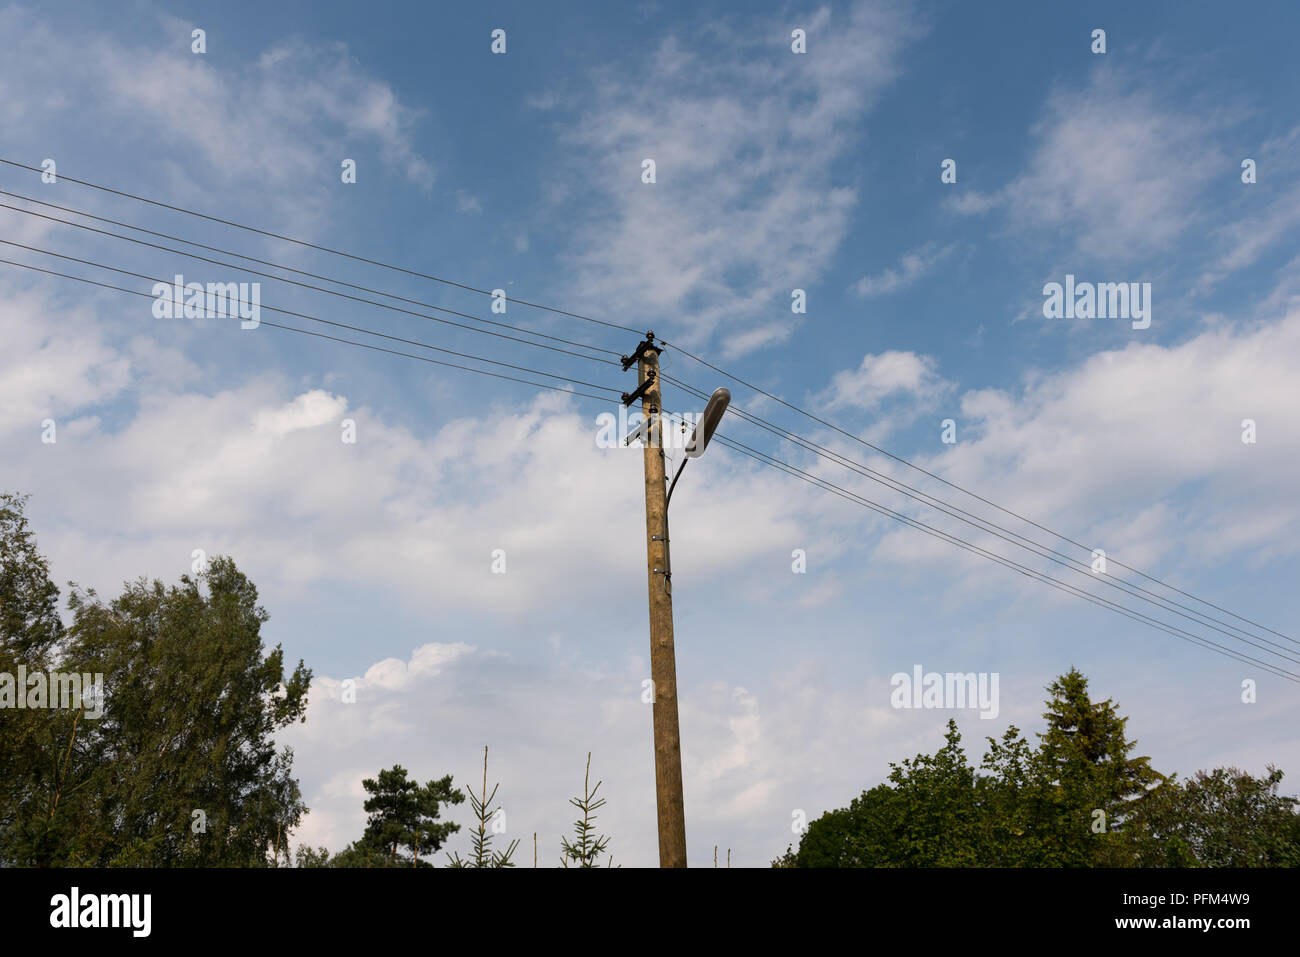 Wooden Street Lamp Post Stock Photos Wiring A With Electric Wires Against Blue Sky White Clouds Image